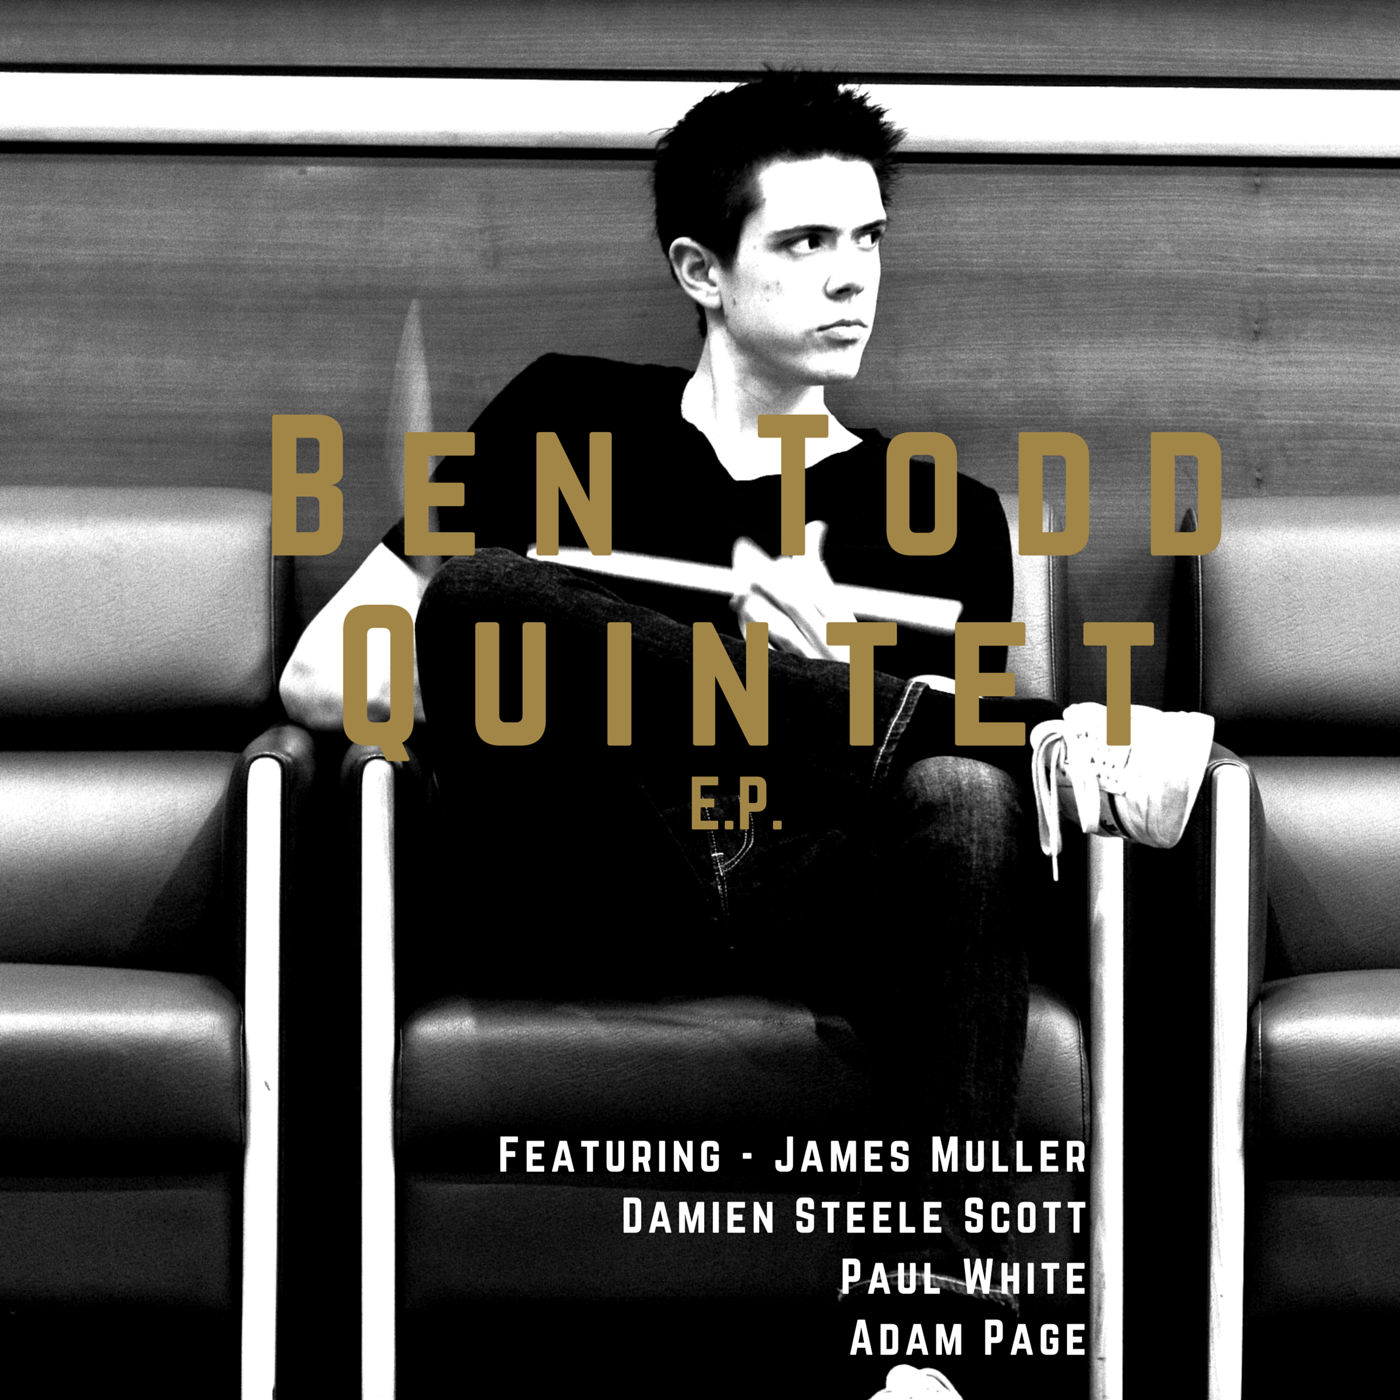 Click to find out more about the Ben Todd Quintet